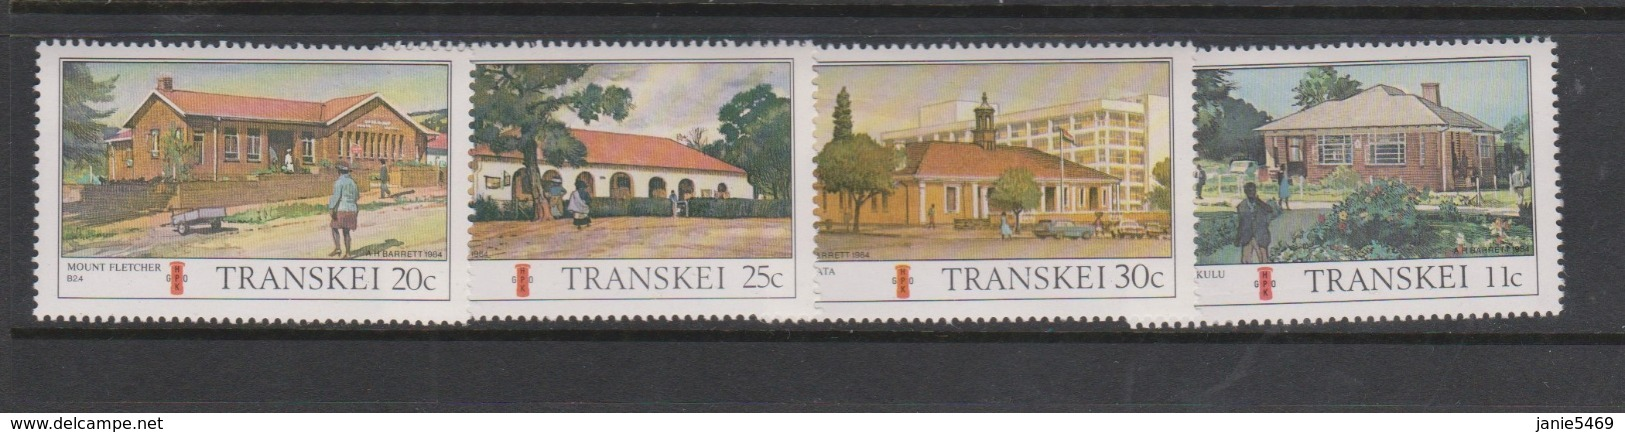 South Africa-Transkei SG 156-159 1984 Post Offices,Mint Never Hinged - Transkei